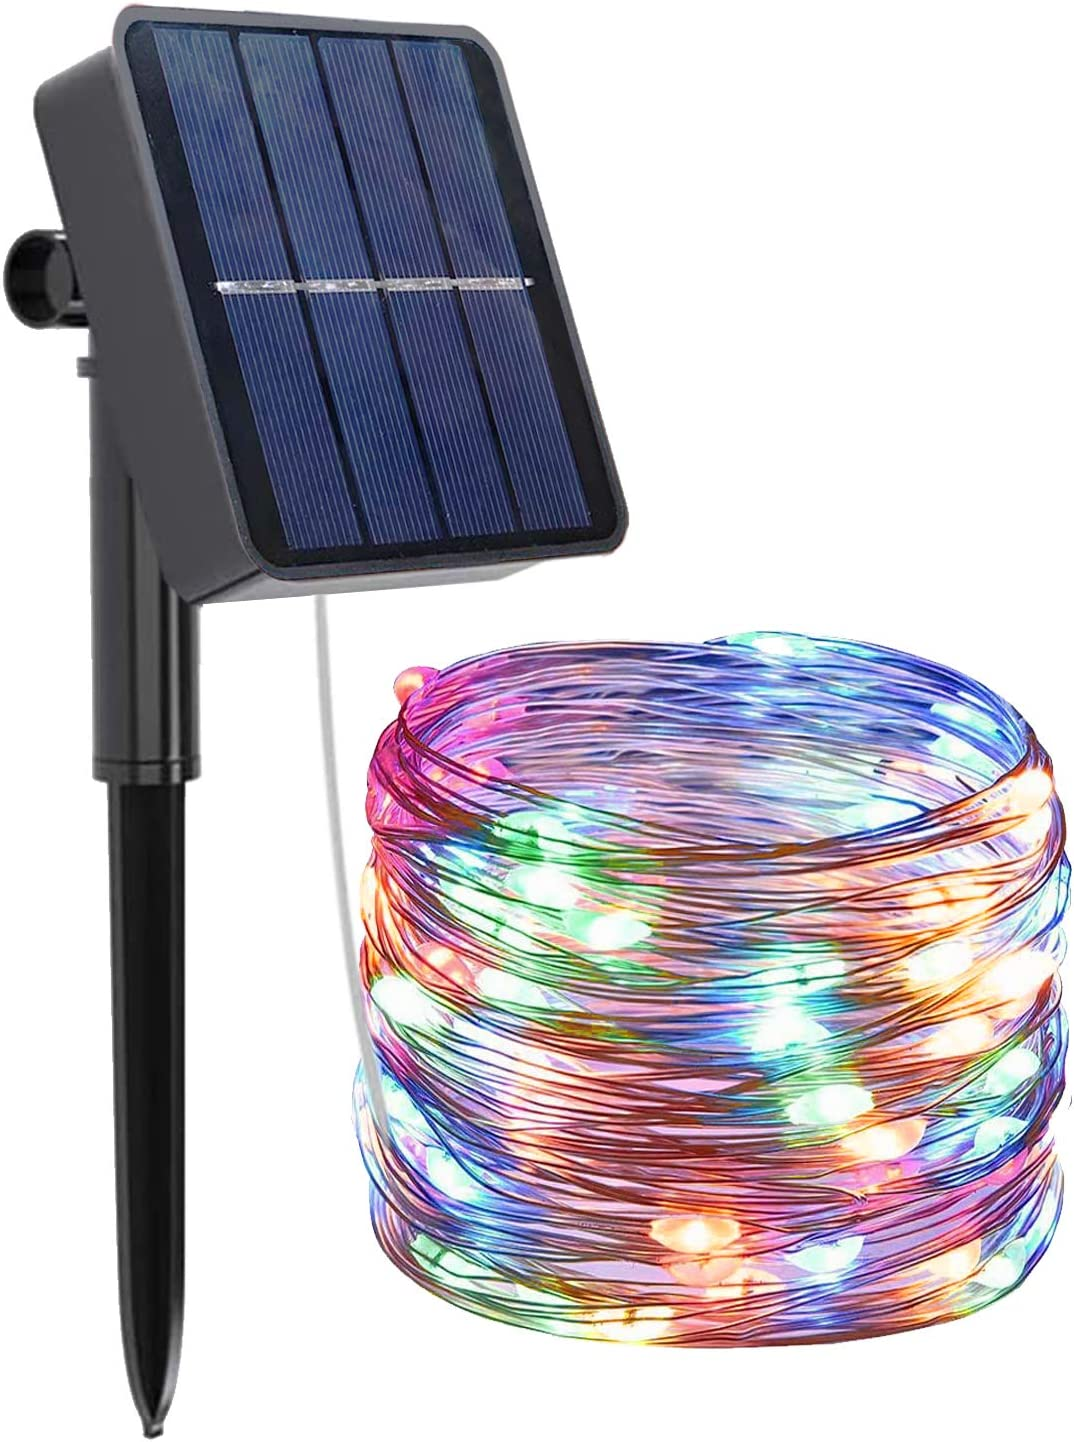 MYEMITTING Solar String Lights Outdoor Waterproof, 72FT 200 LED Solar Powered Fairy Lights, Decoration Copper Wire Lights with 8 Modes for Patio Yard Trees Christmas Wedding Party Decor (Multicolor)